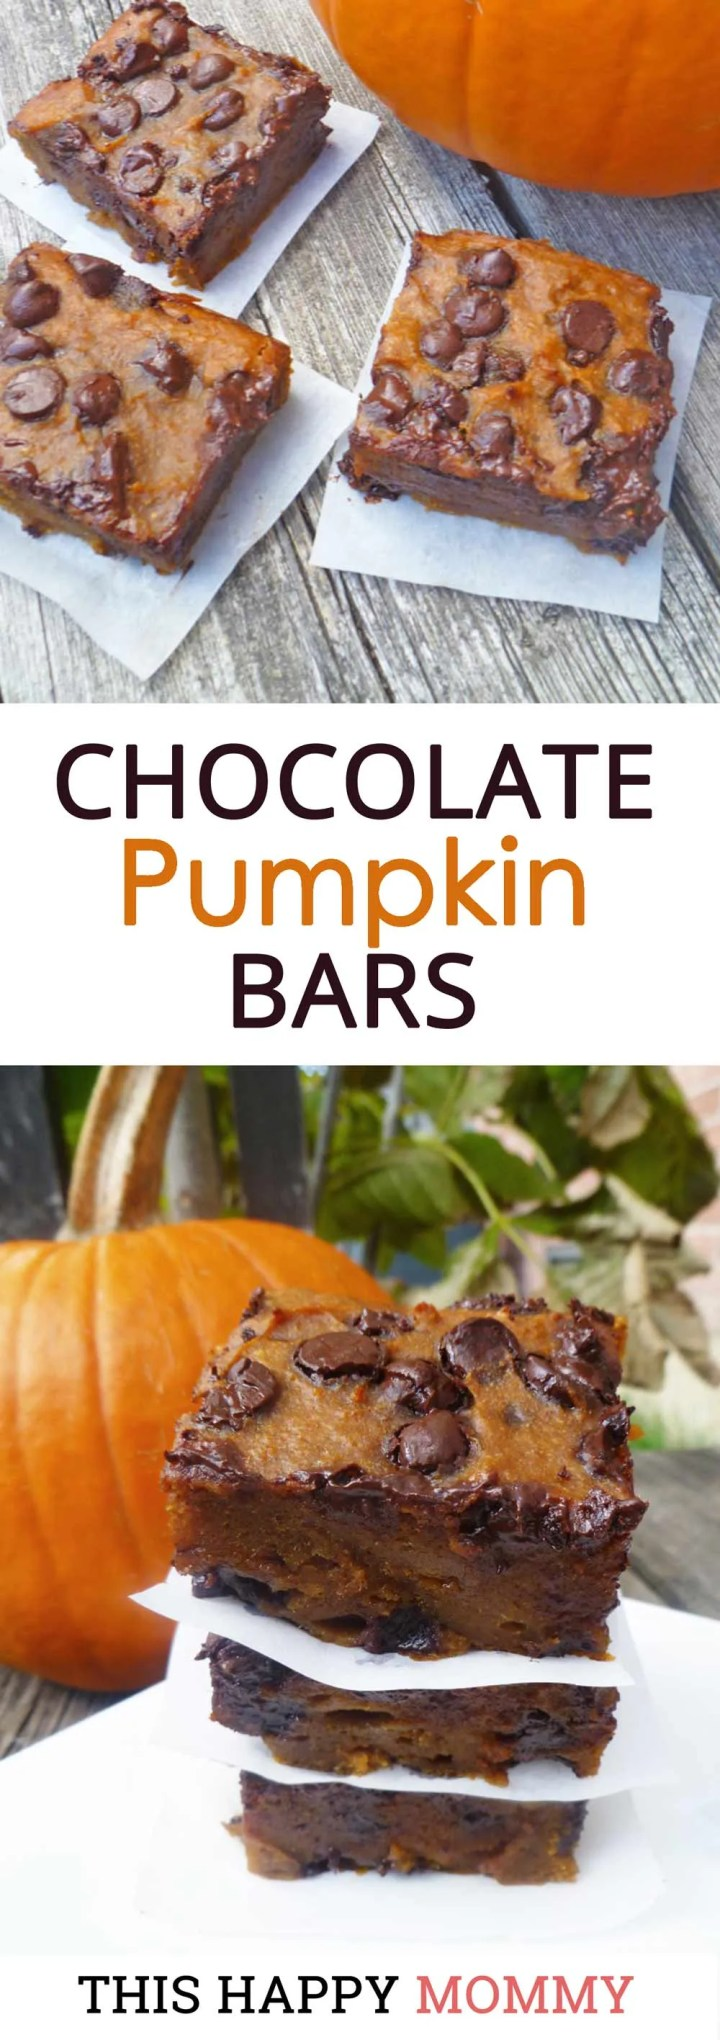 Soft, chewy and oozing chocolate chips, Chocolate Chip Pumpkin Bars are choco-pumpkin perfection. Yum! Clean Eating Desserts   Healthy Chocolate Dessert Recipes   Easy to Make Sweet Treat Desserts   Healthy Homemade Blondie   Simple and Light Dessert   Halloween Desserts   Fall Treats   #blondies #recipe #dessert #easyrecipe #pumpkin   thishappymommy.com